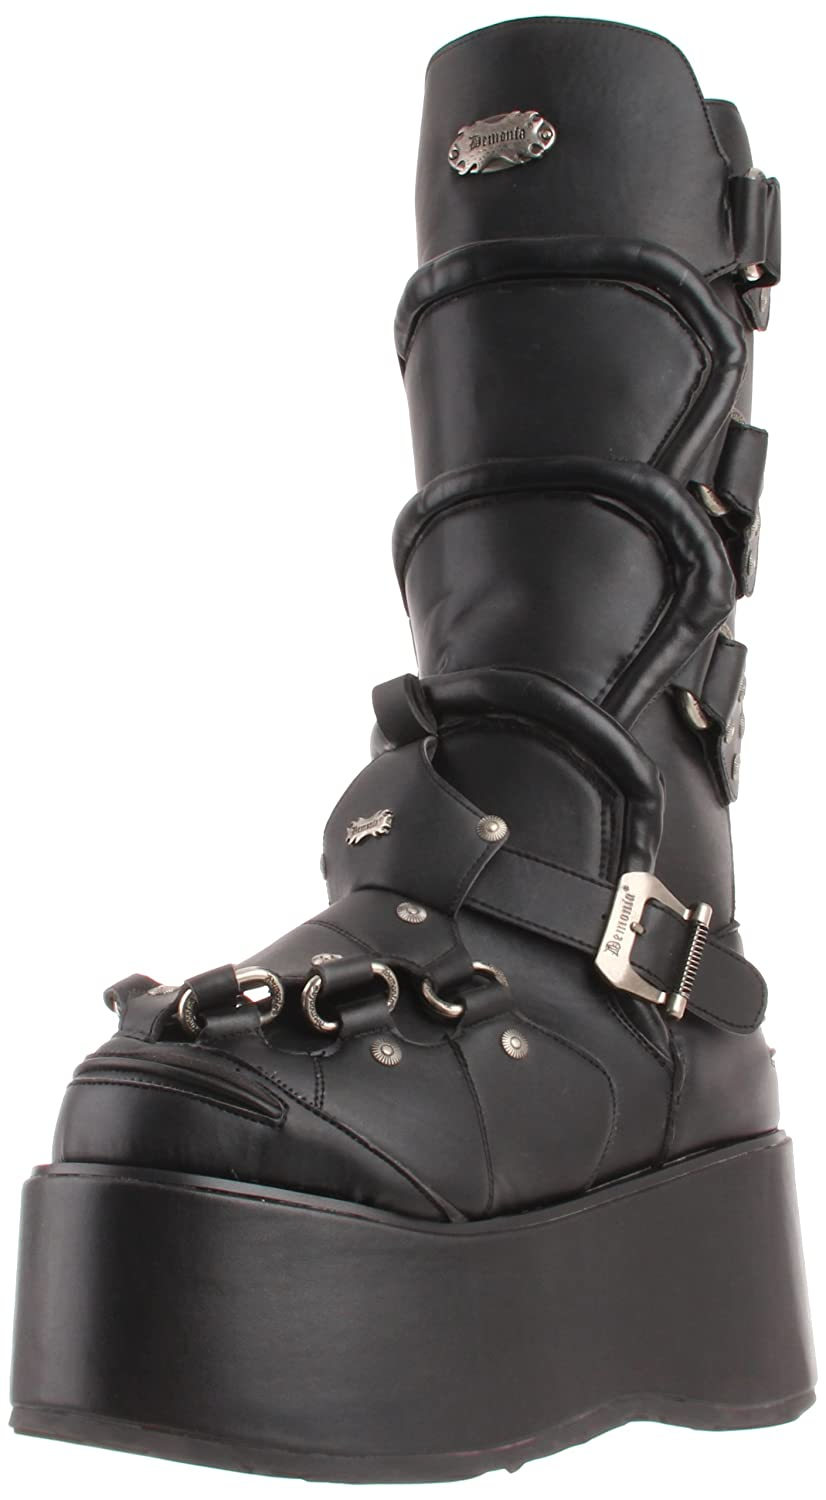 Pleaser Men's Wicked-732 Boot B003HVJIAM 8 D(M) US|Black Polyurethane